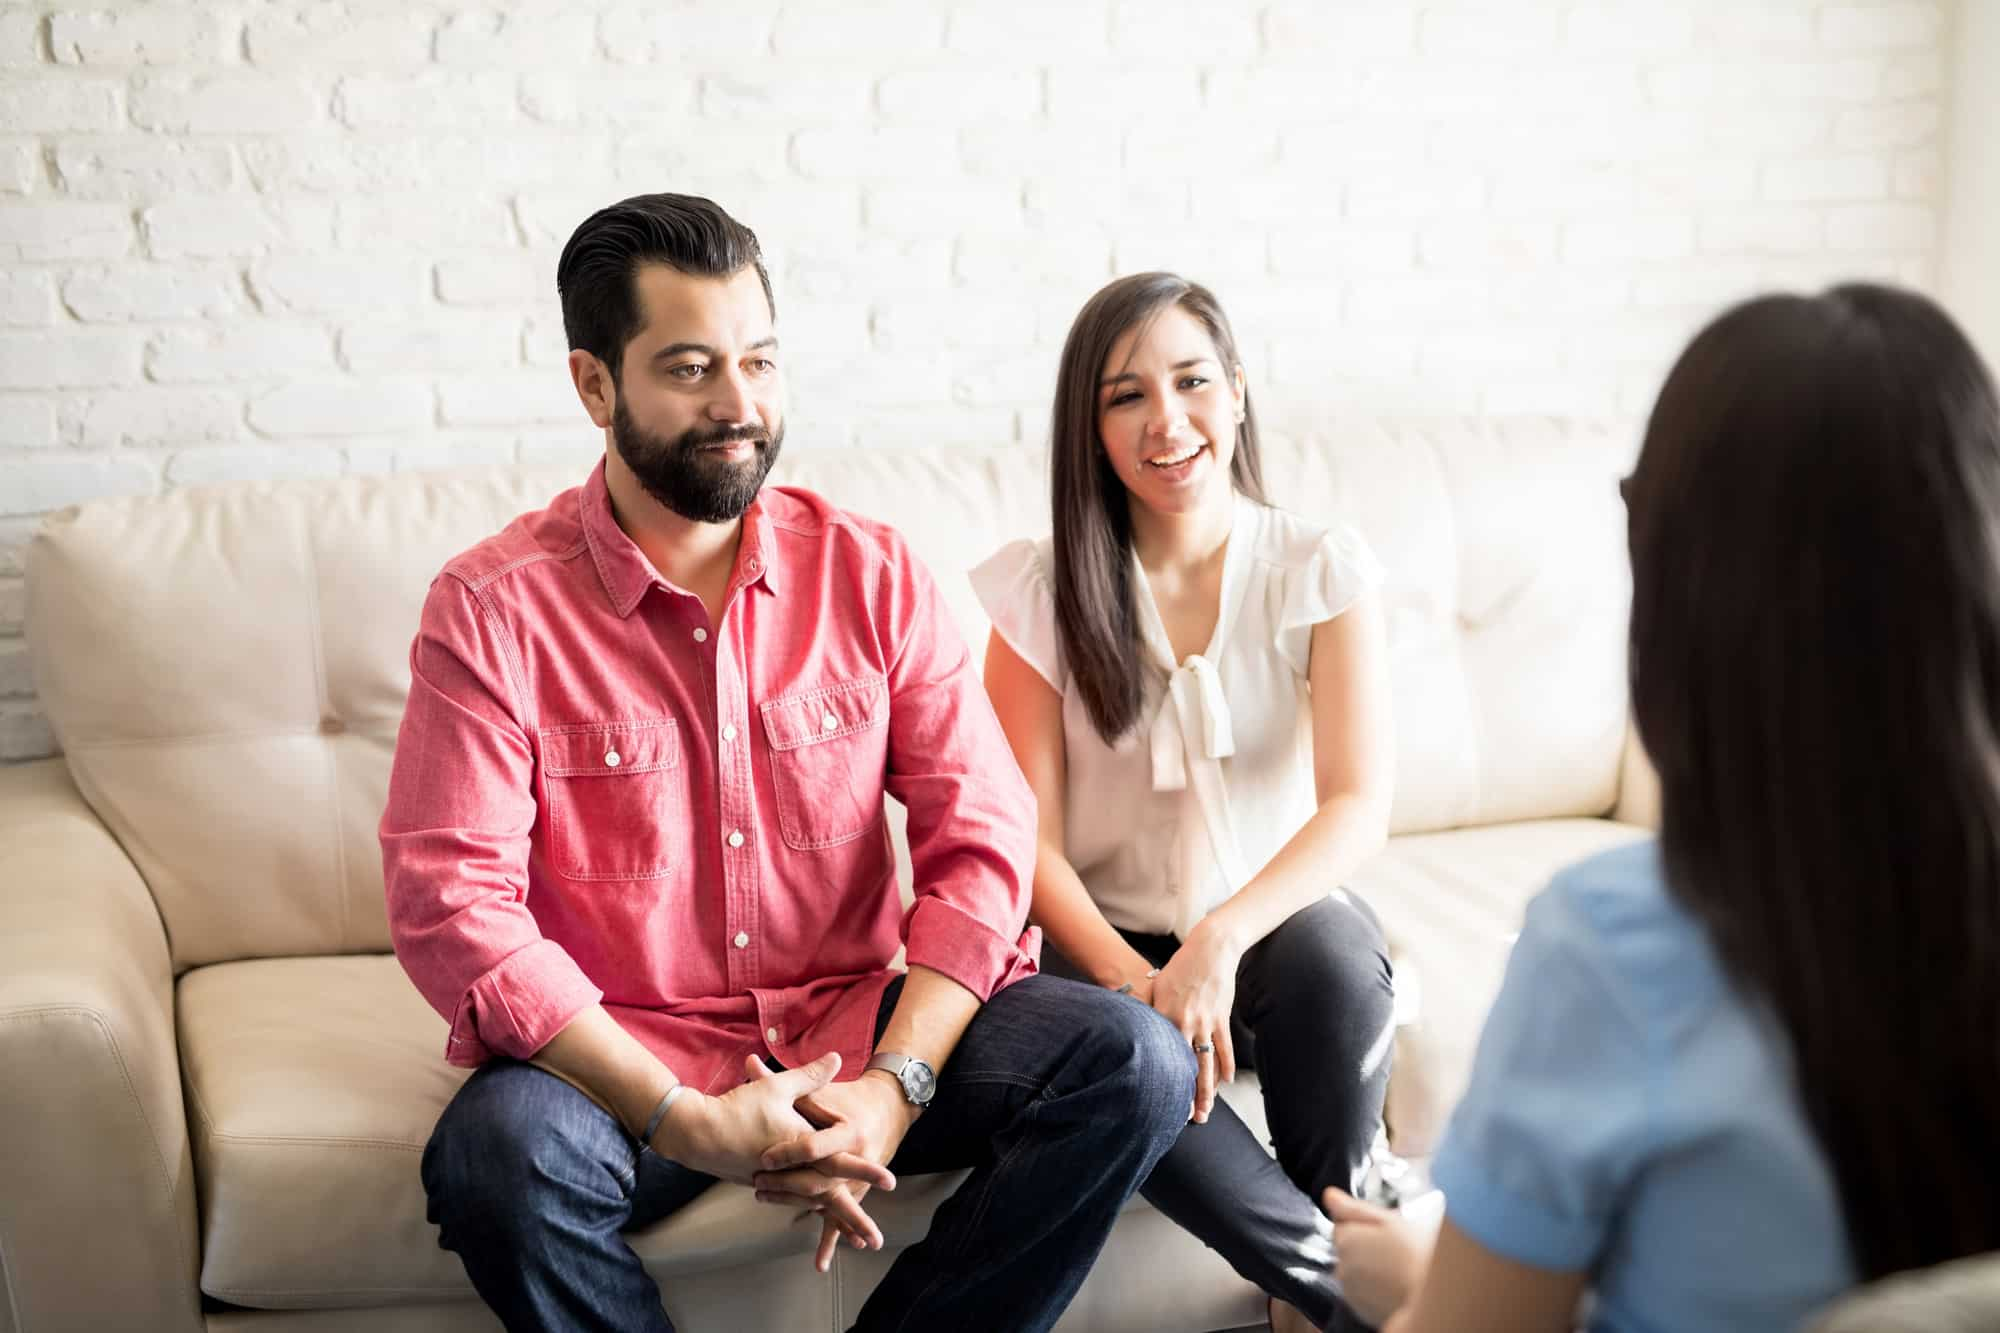 transformations counseling group lcsw pllc Couples Marriage Relationship Counseling Therapy